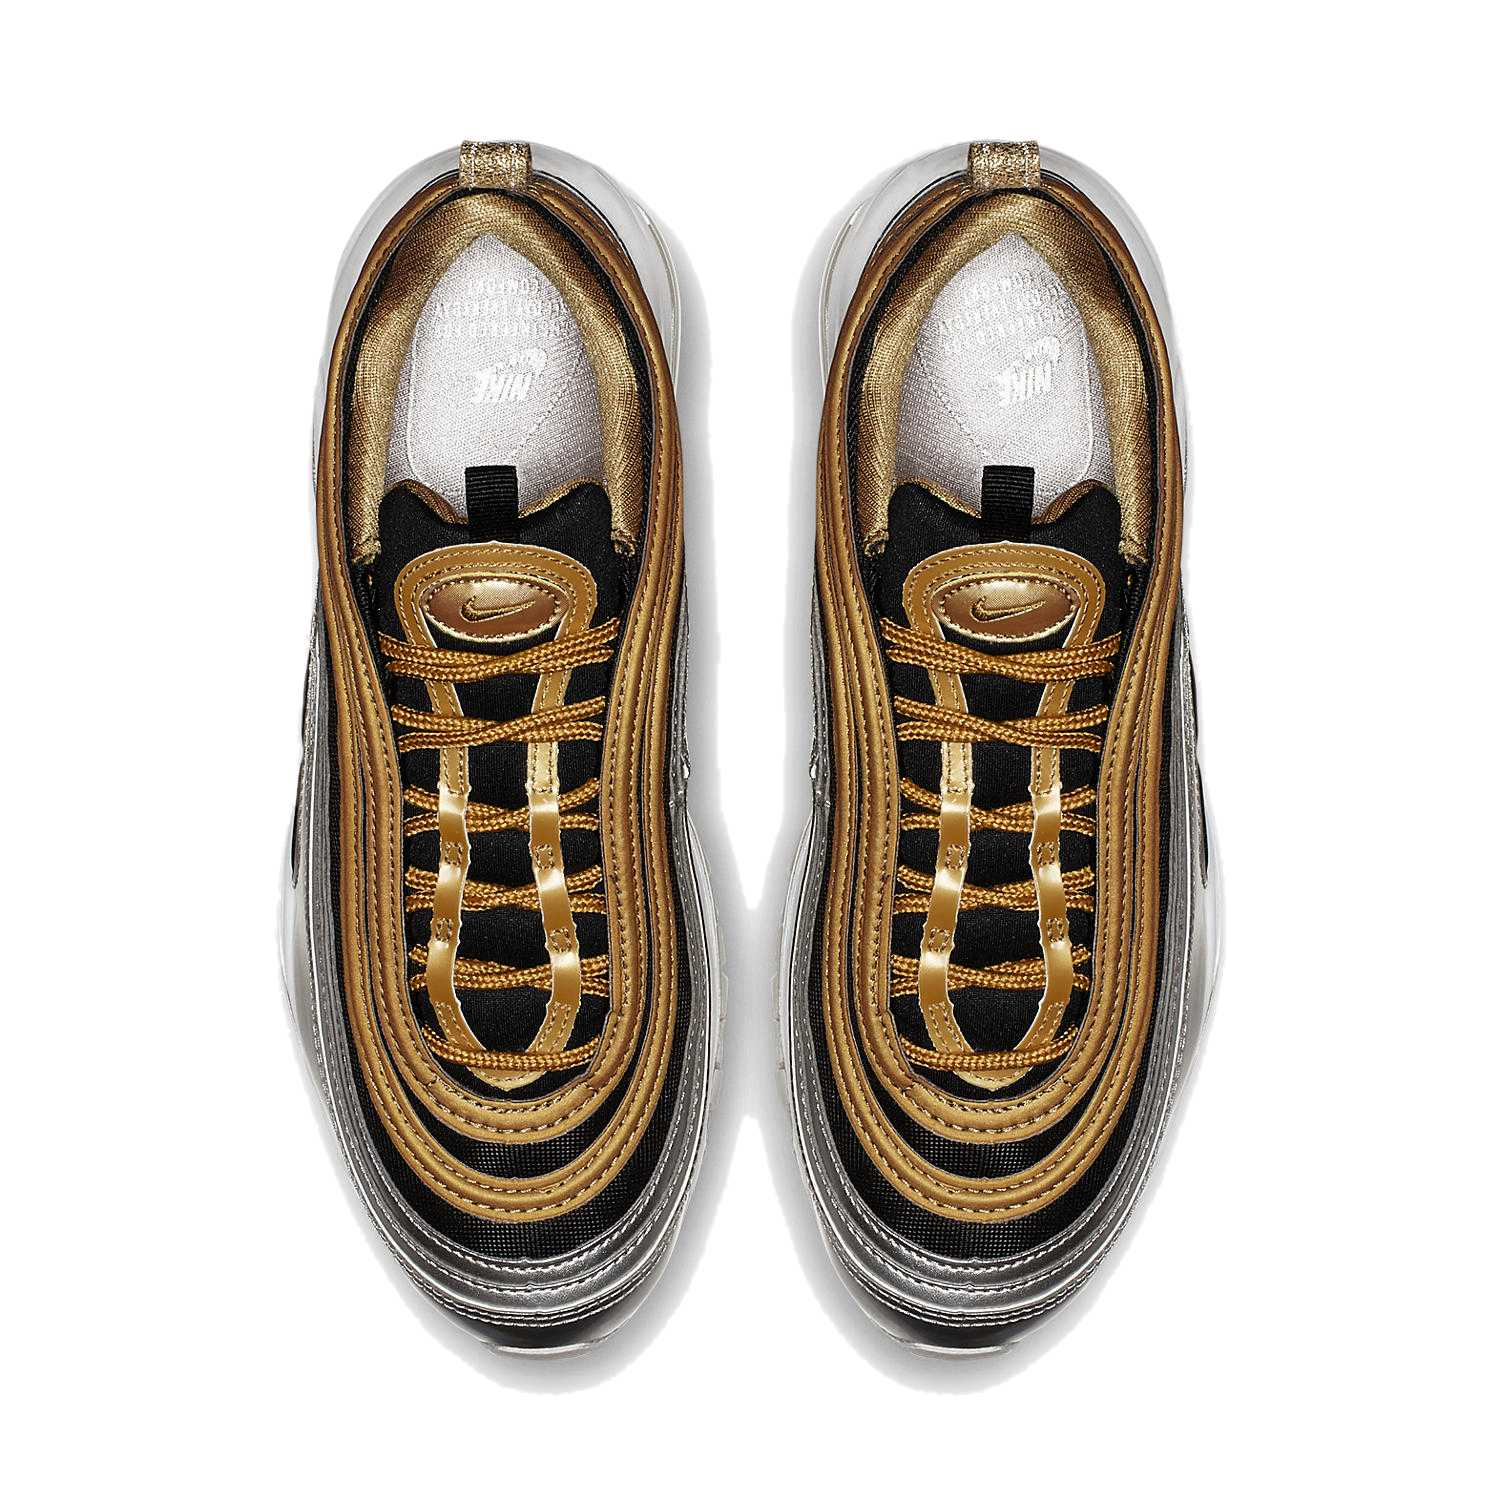 BUTY DAMSKIE LIFESTYLE NIKE AIR MAX 97 SPECIAL EDITION